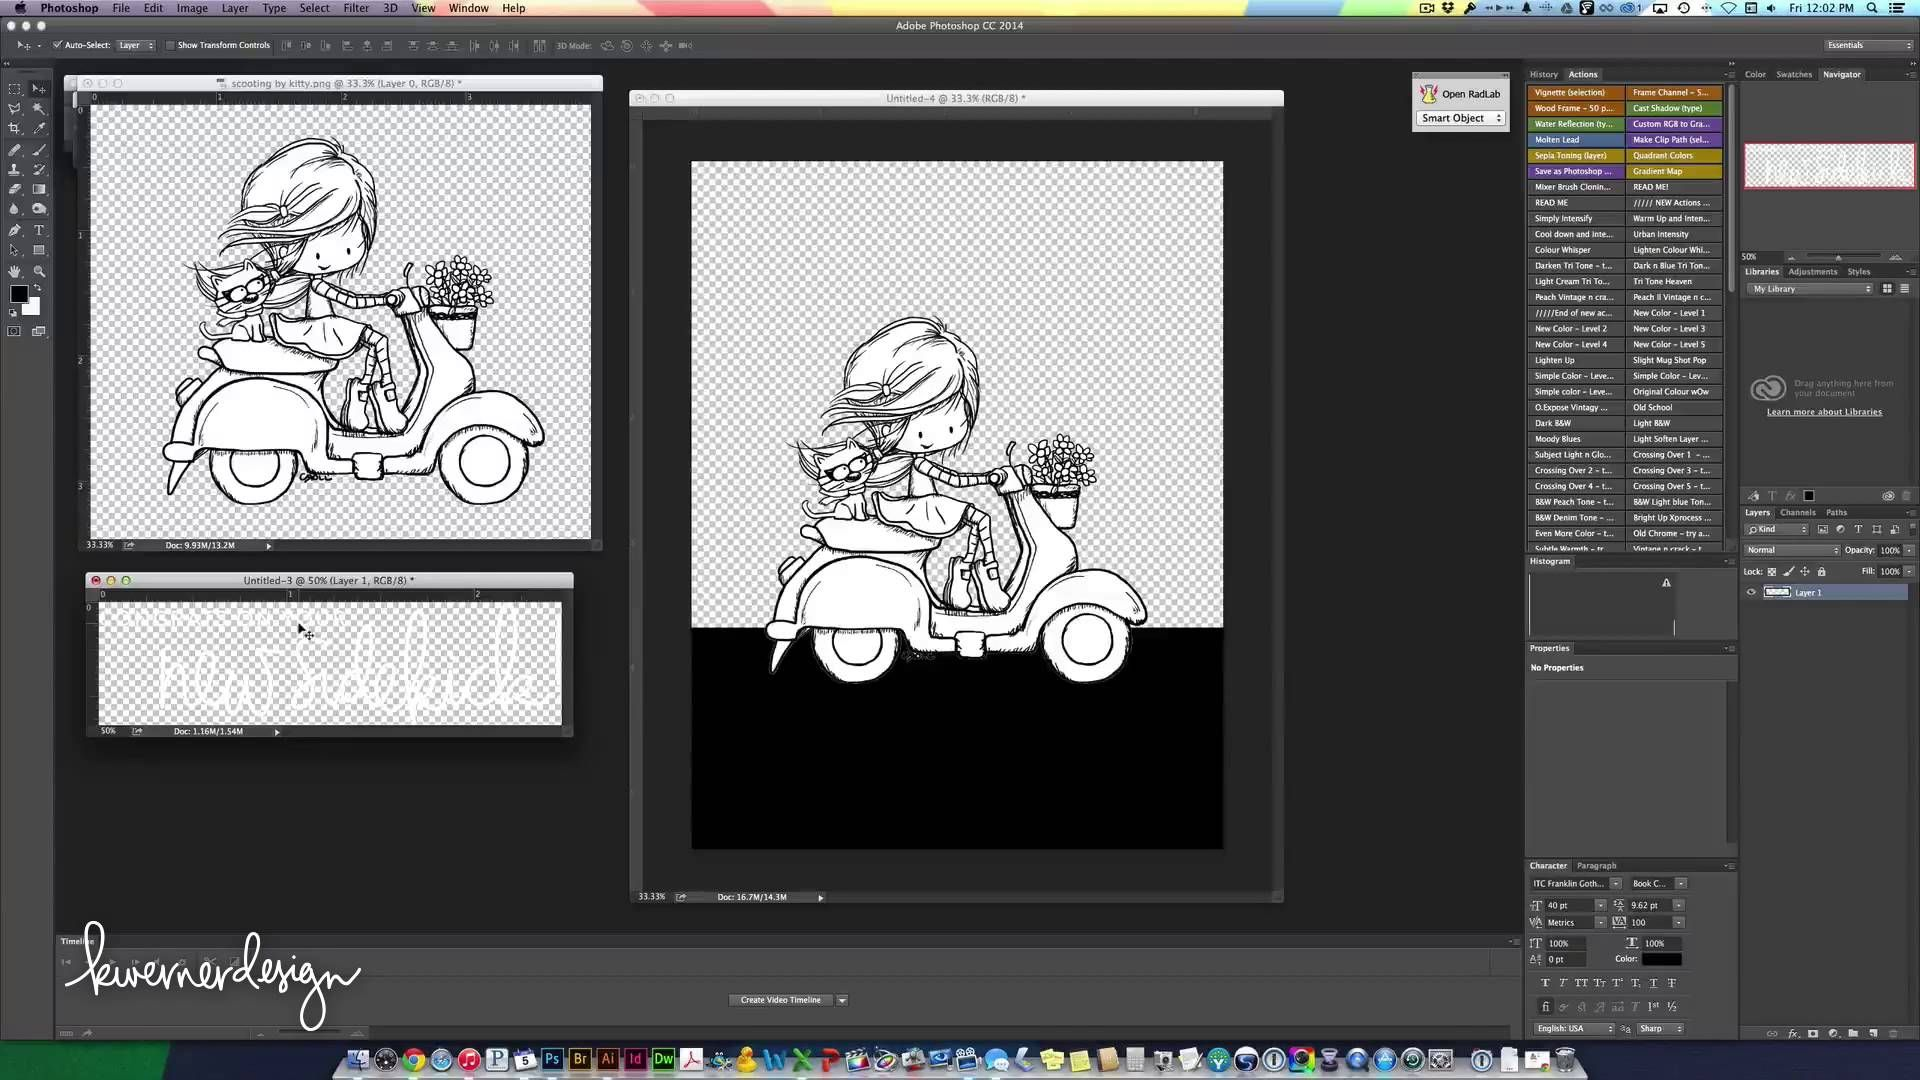 Setting up card in Photoshop - Congrats on Your New Sidekick